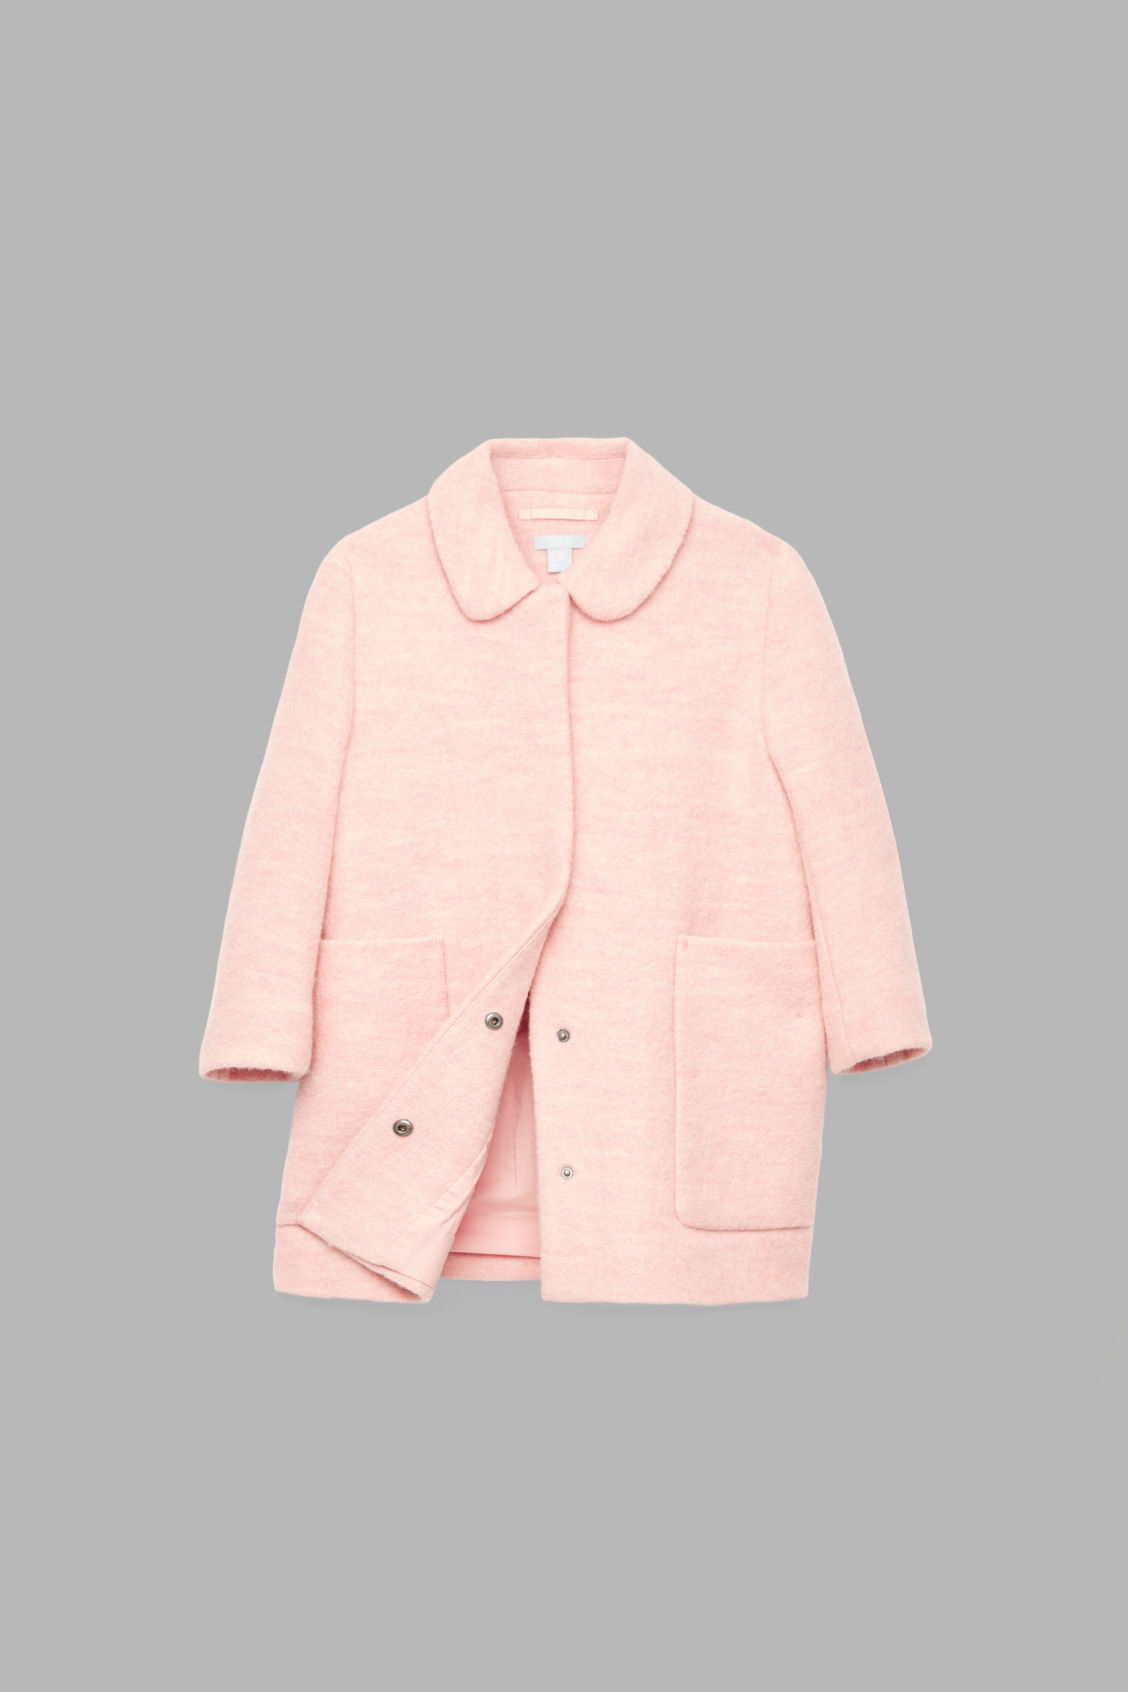 Detailed image of Cos boiled wool coat in pink